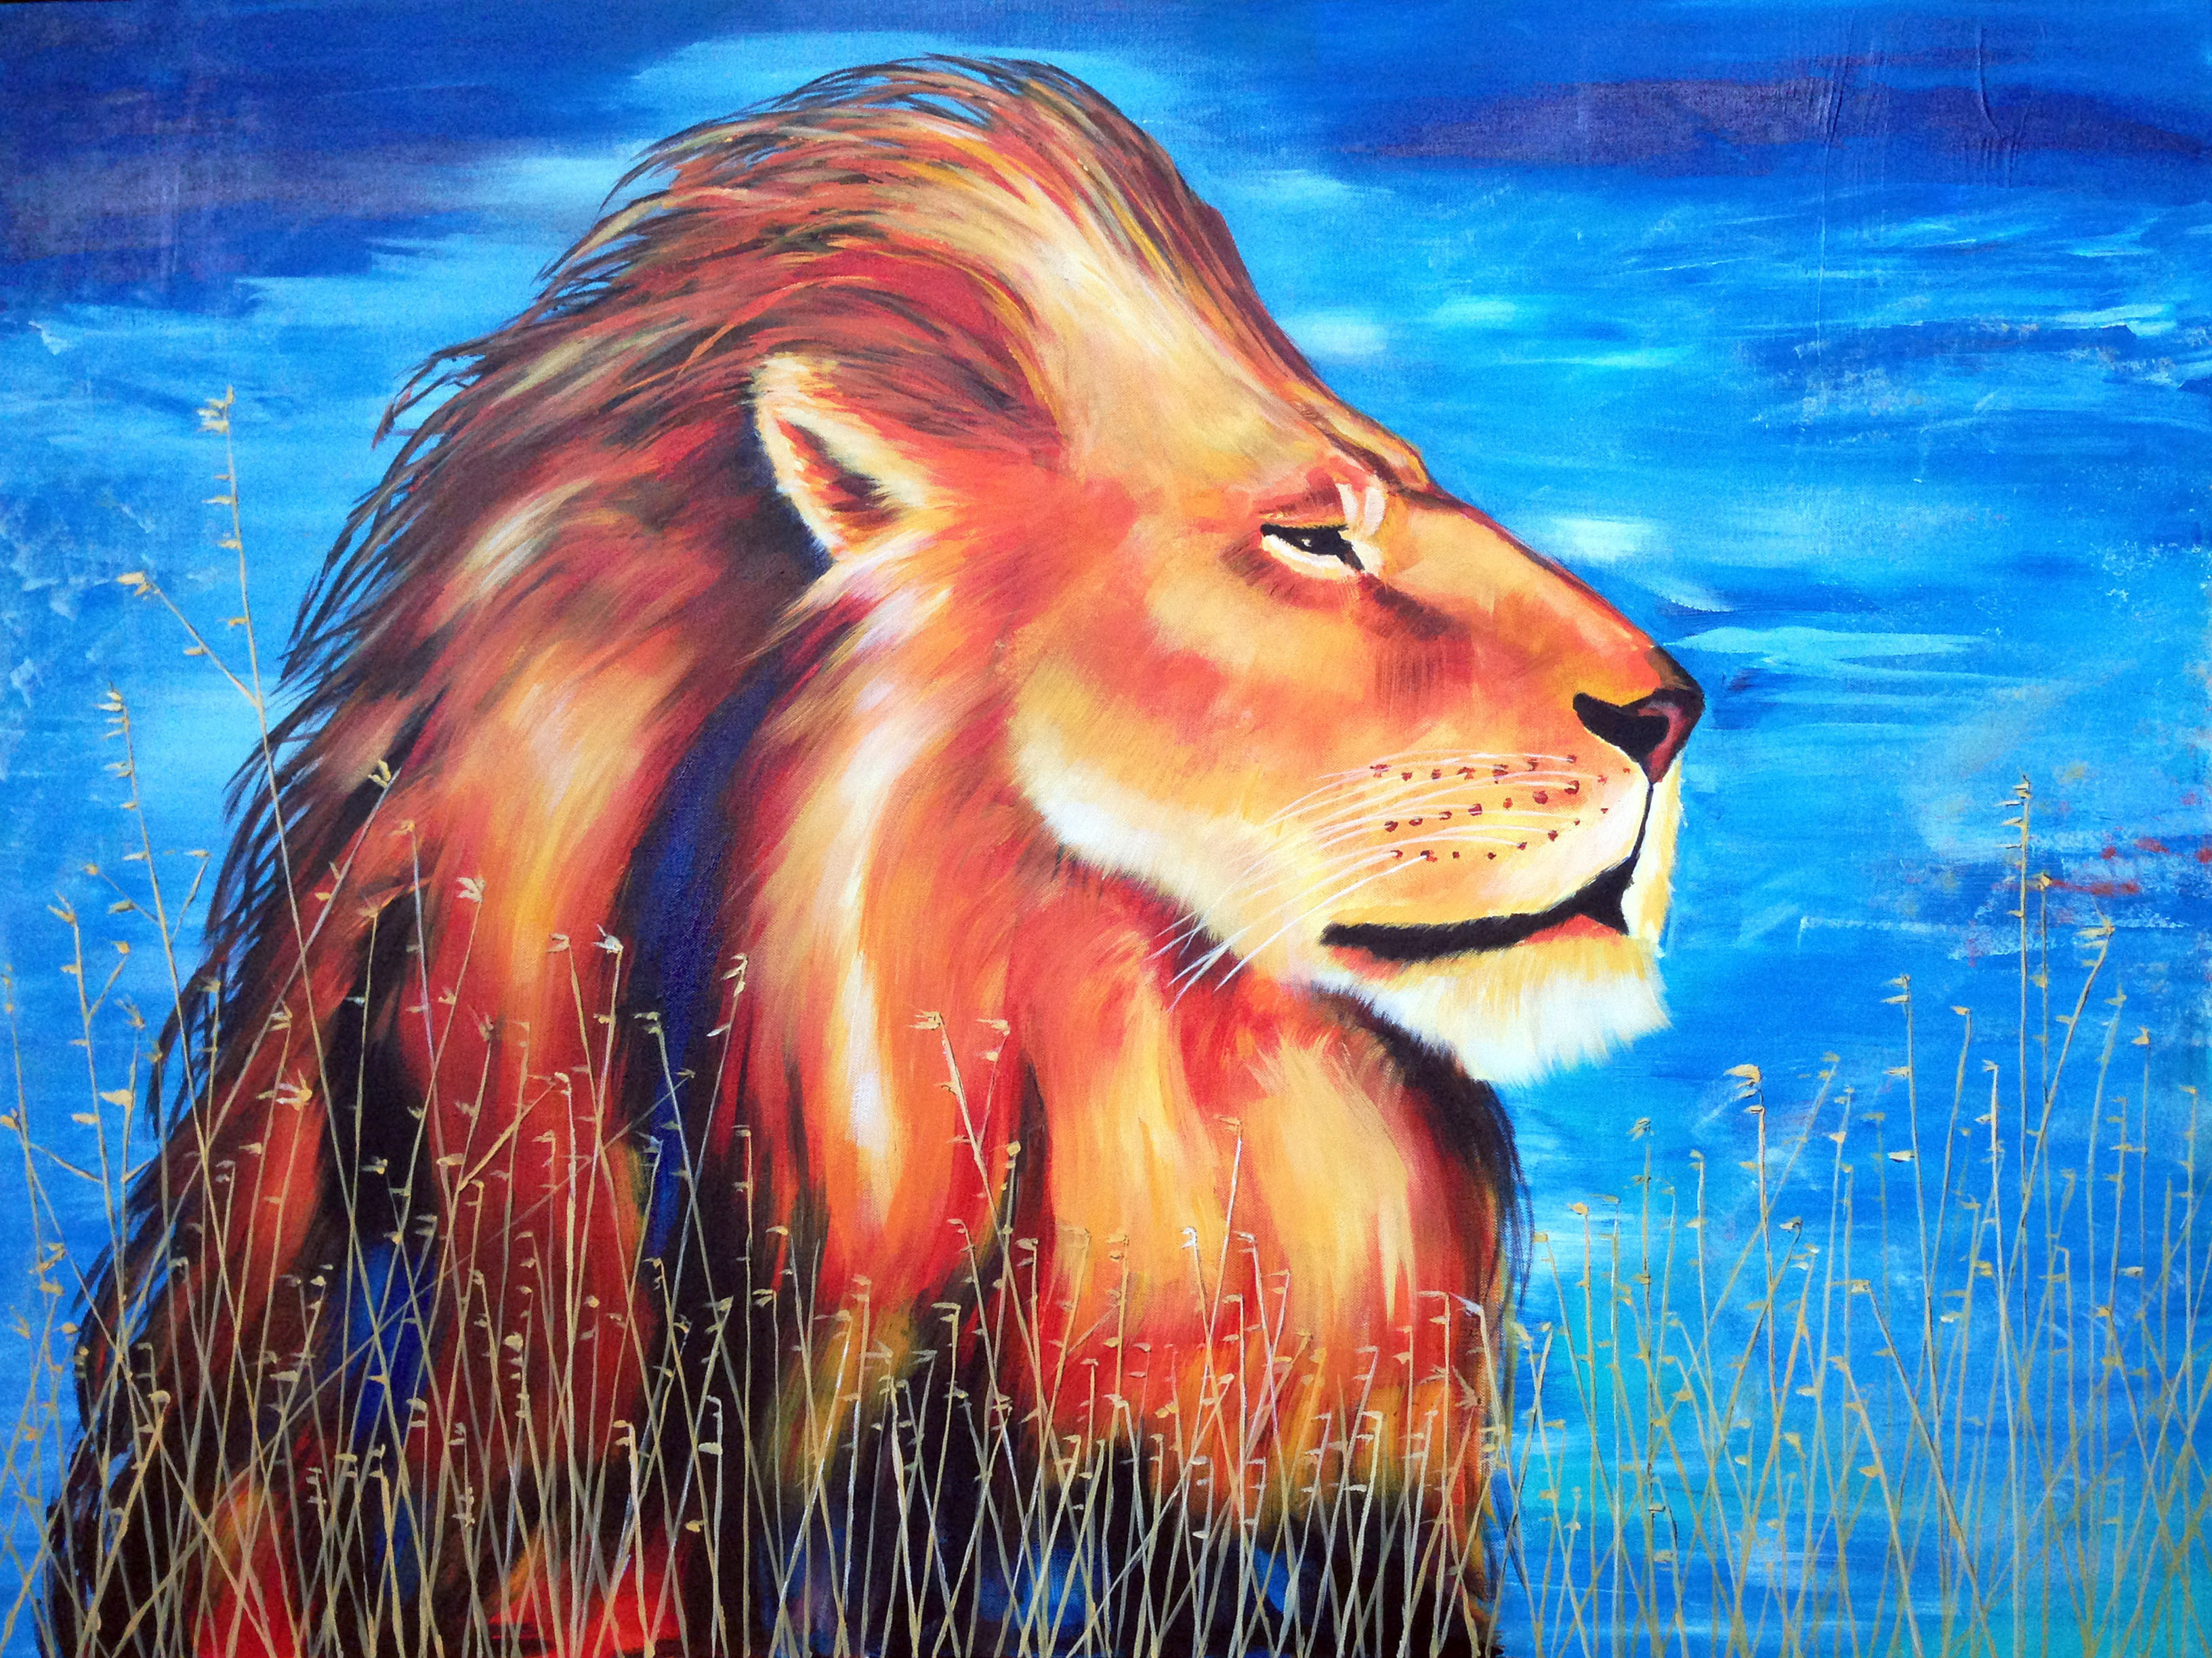 David Smith Artwork: Majestic Lion | Original Painting ...